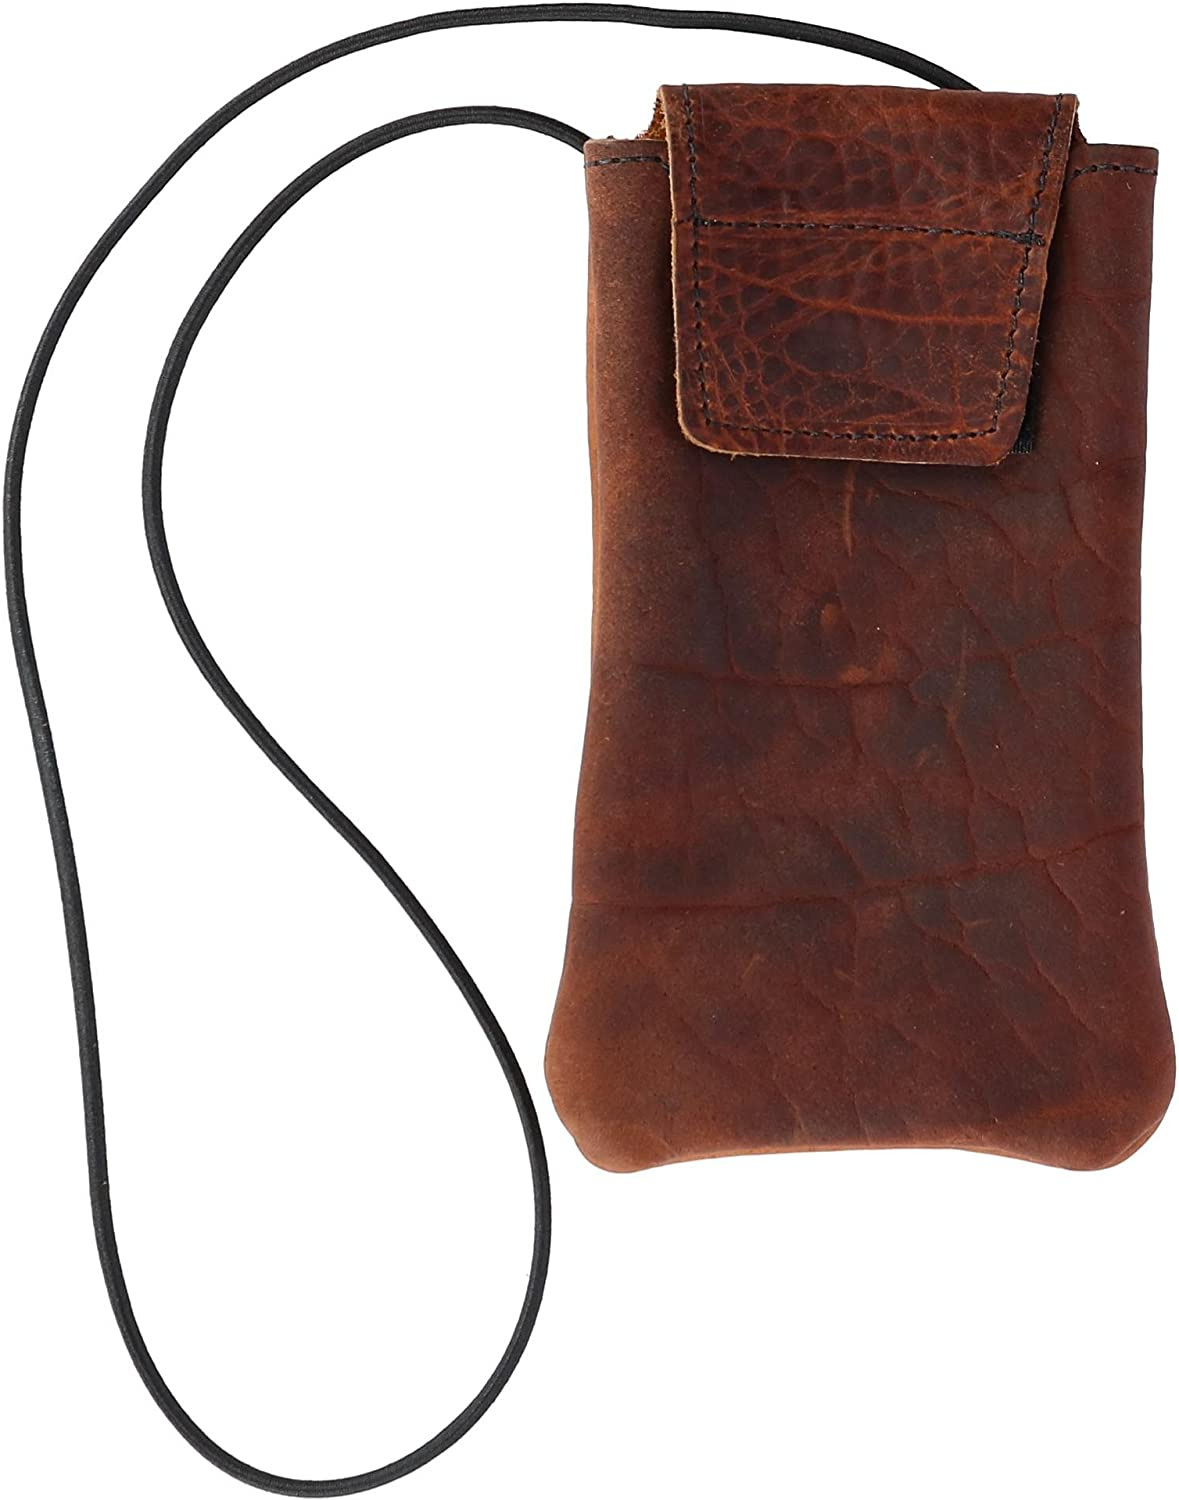 Boston Leather Textured Bison Leather Eyeglass Case with Neck String